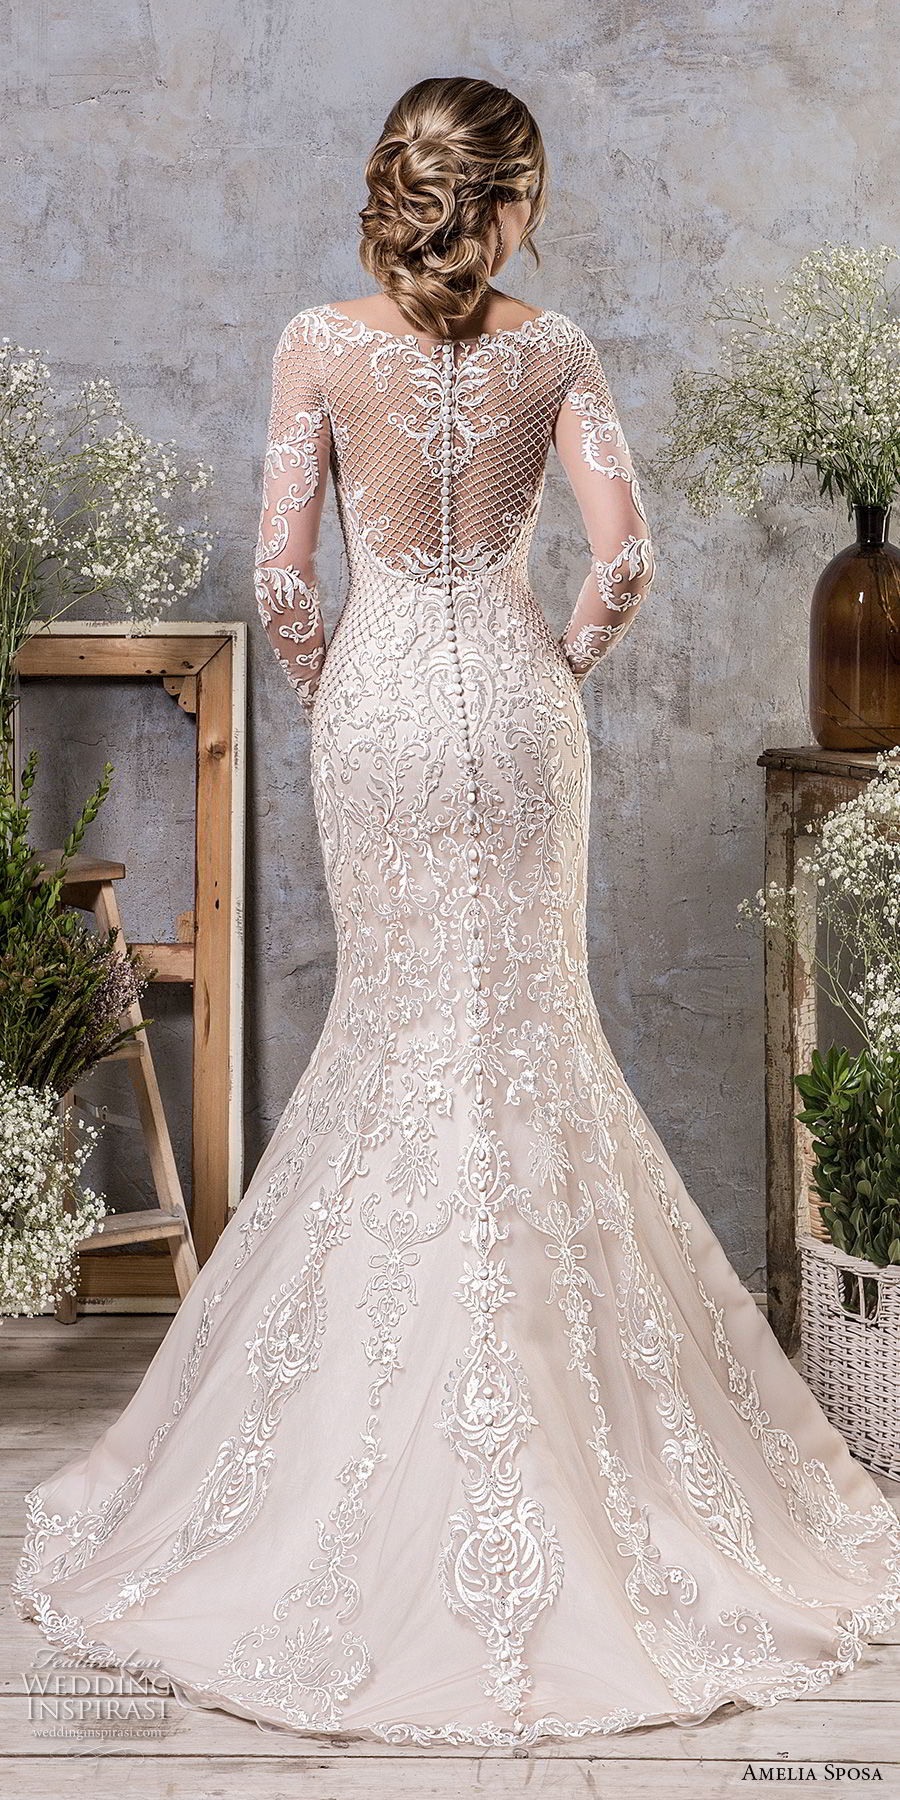 amelia sposa fall 2018 bridal long sleeves illusion bateau sweetheart neckline full embellishment elegant mermaid wedding dress sheer lace back sweep train (19) bv